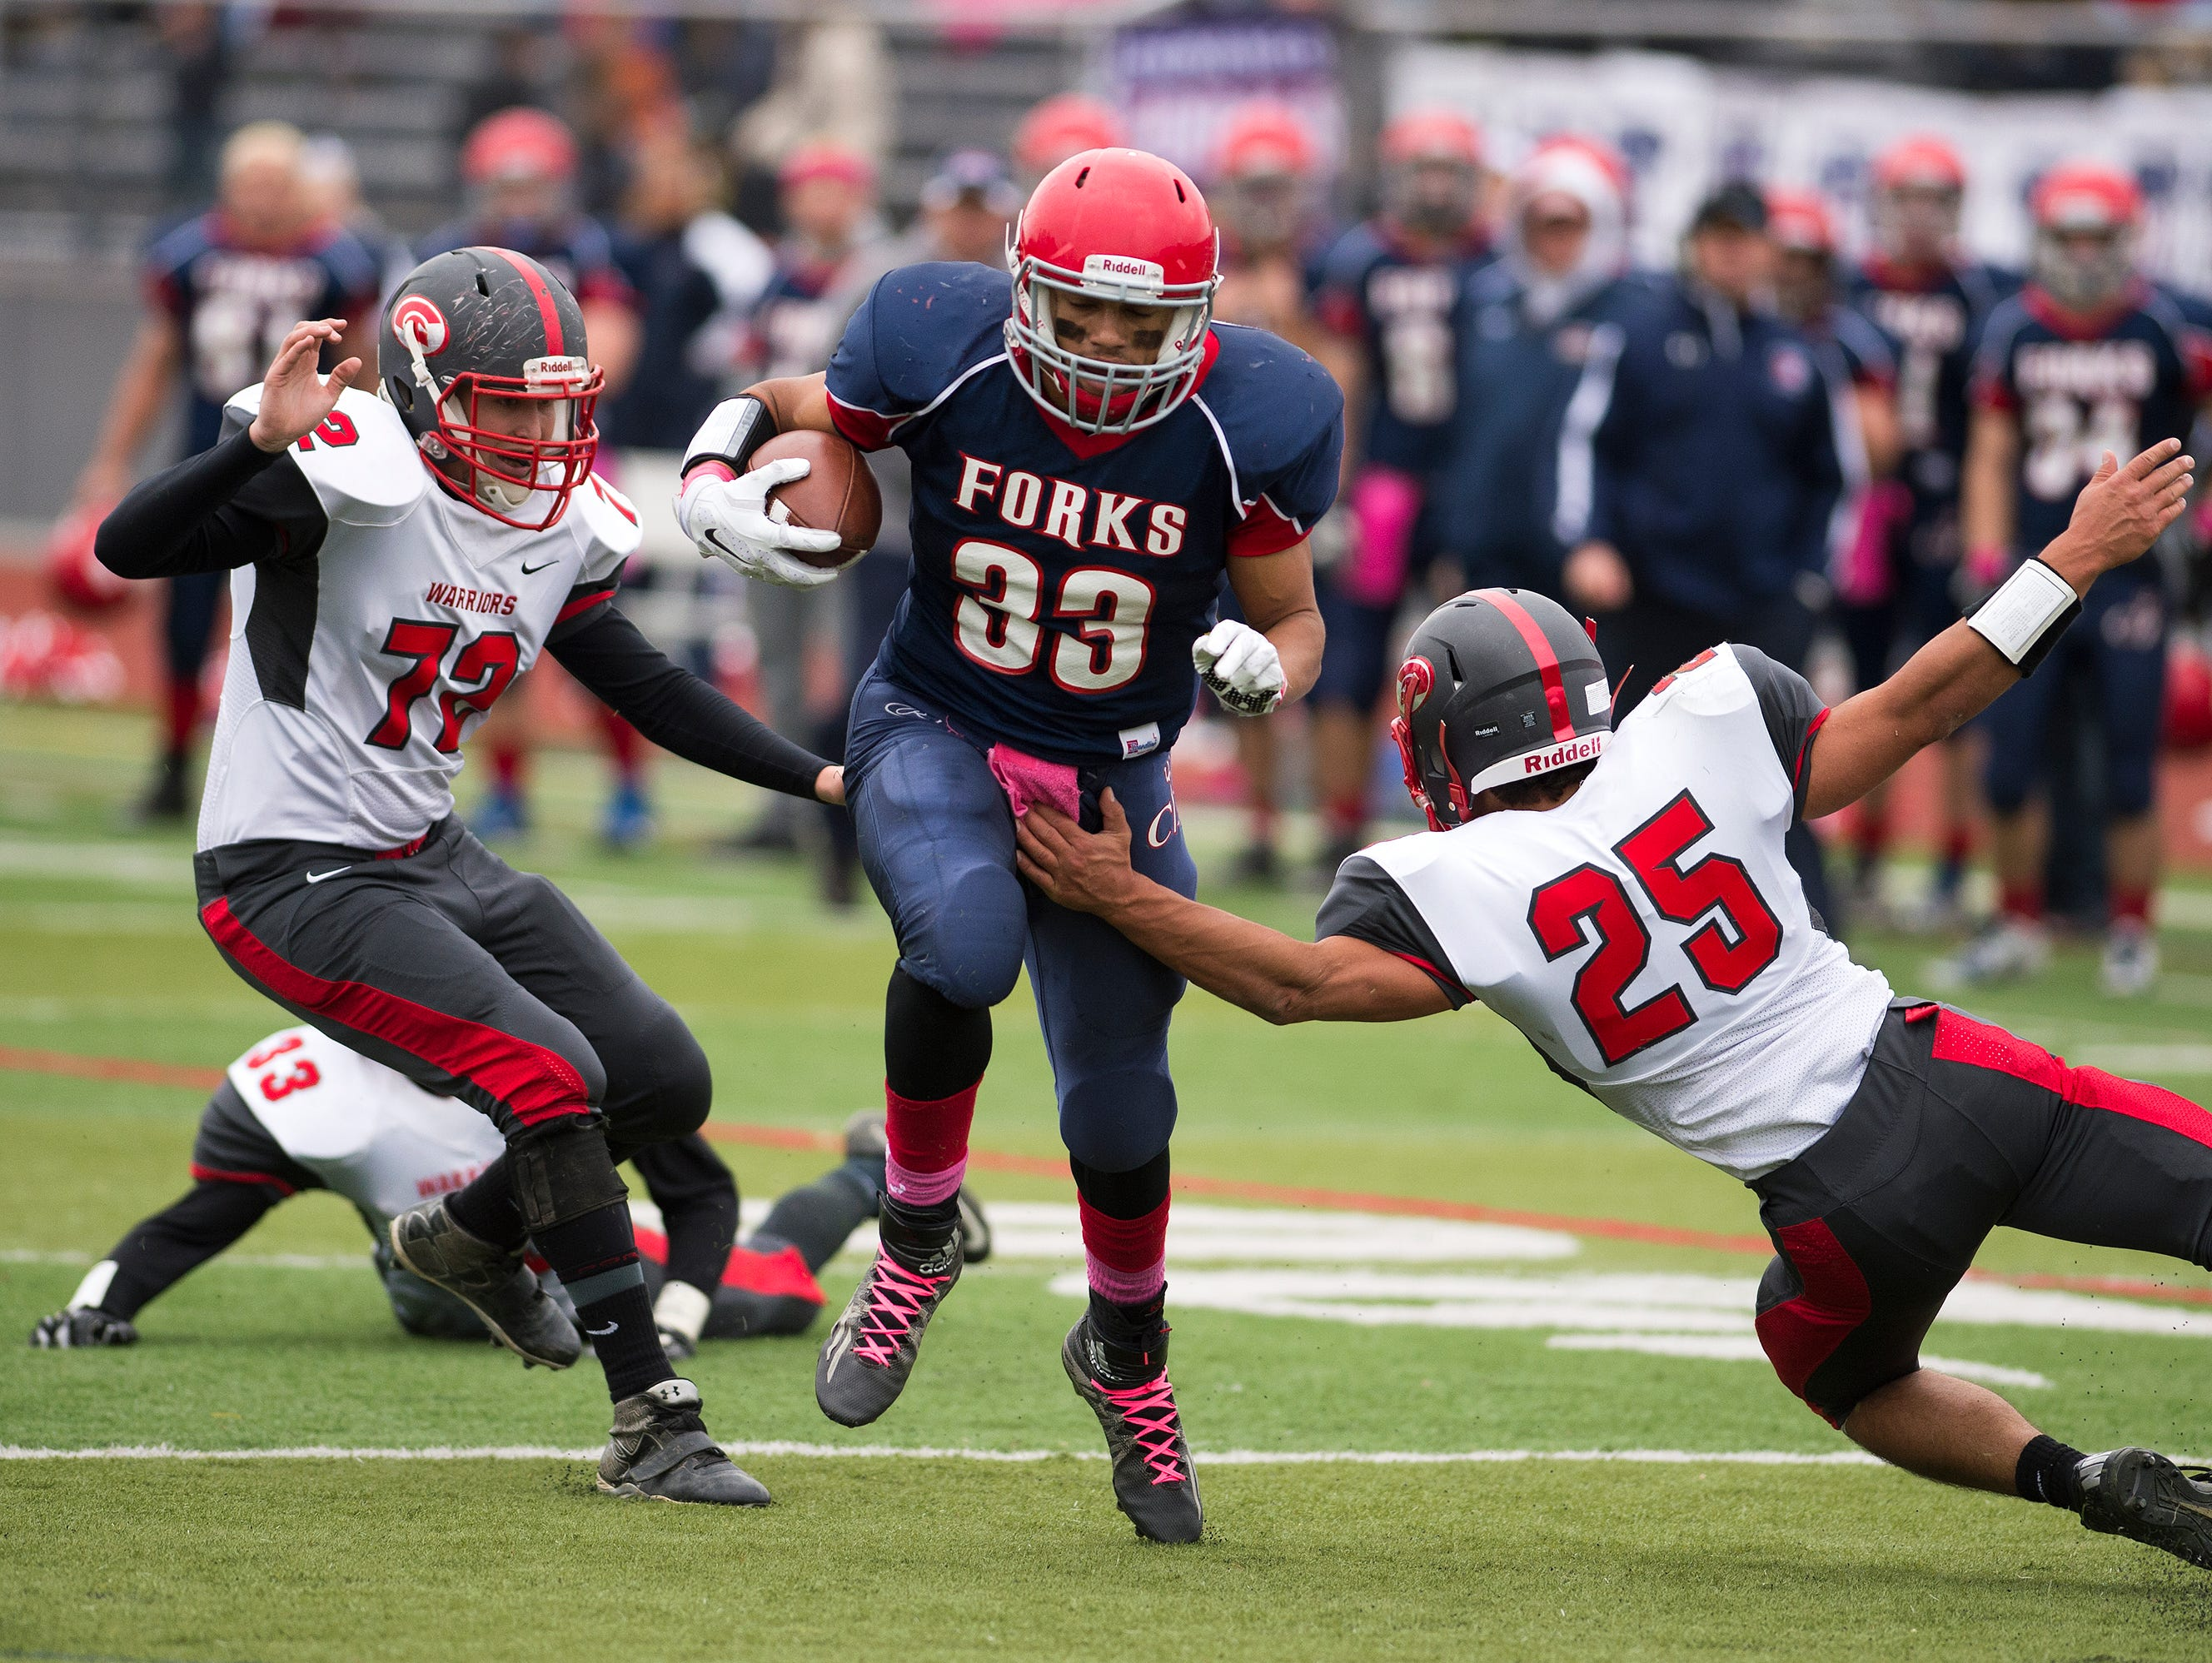 Chenango Forks quarterback L.J. Watson rushes for a touchdown during the second quarter of the Blue Devil's 43-27 win over Chenango Valley at home on Saturday.